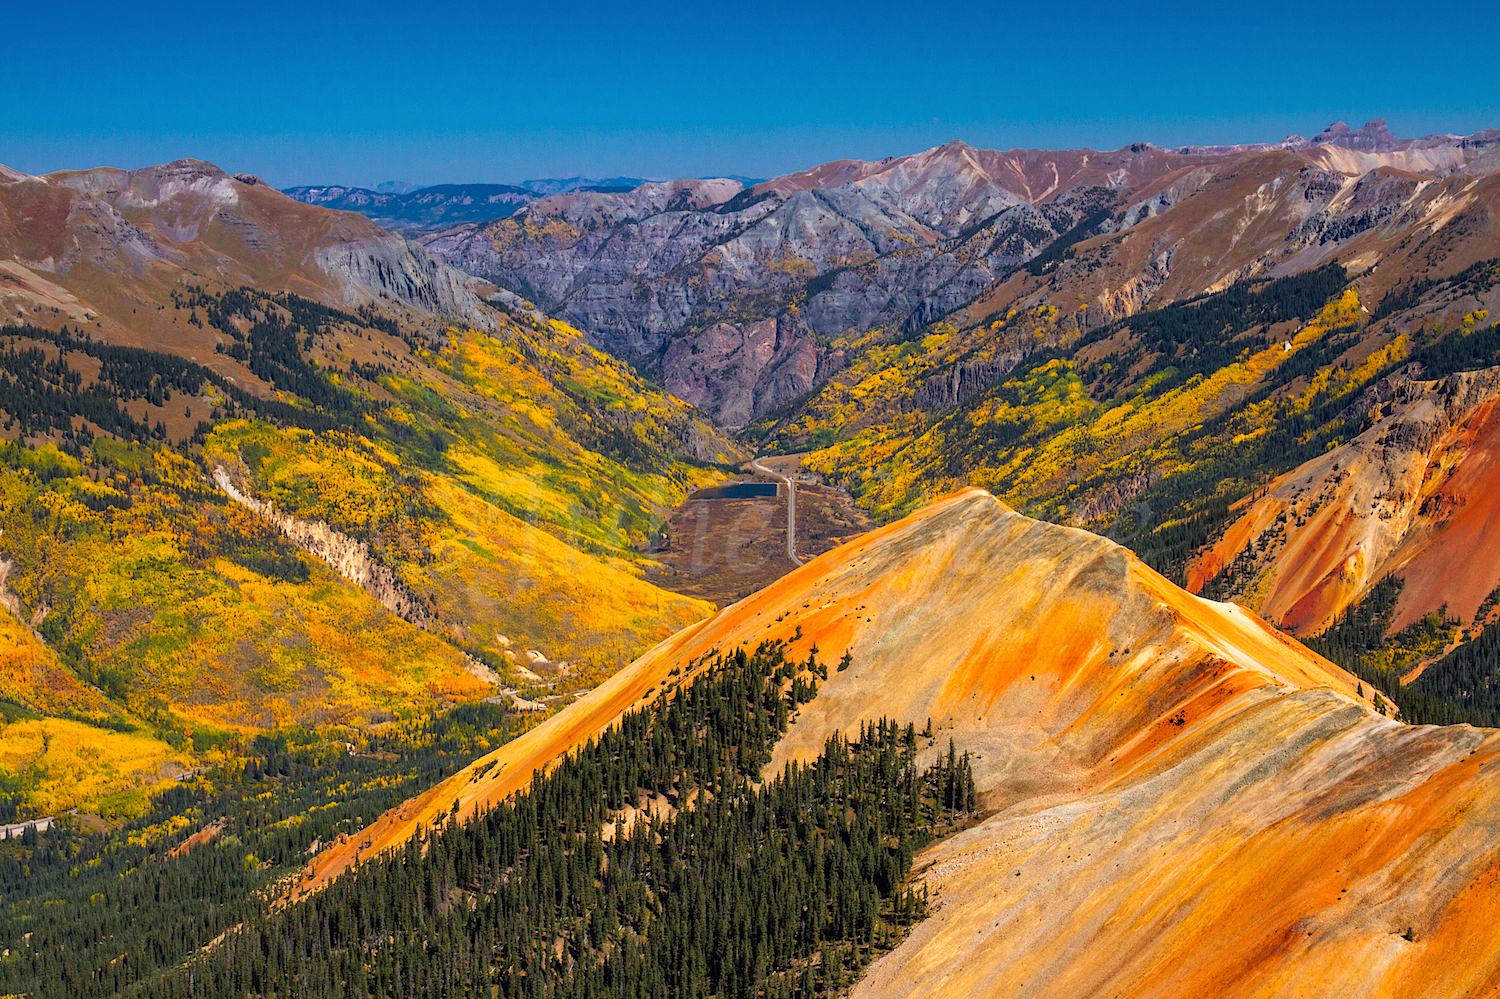 Red Mountain #3, Image #1188